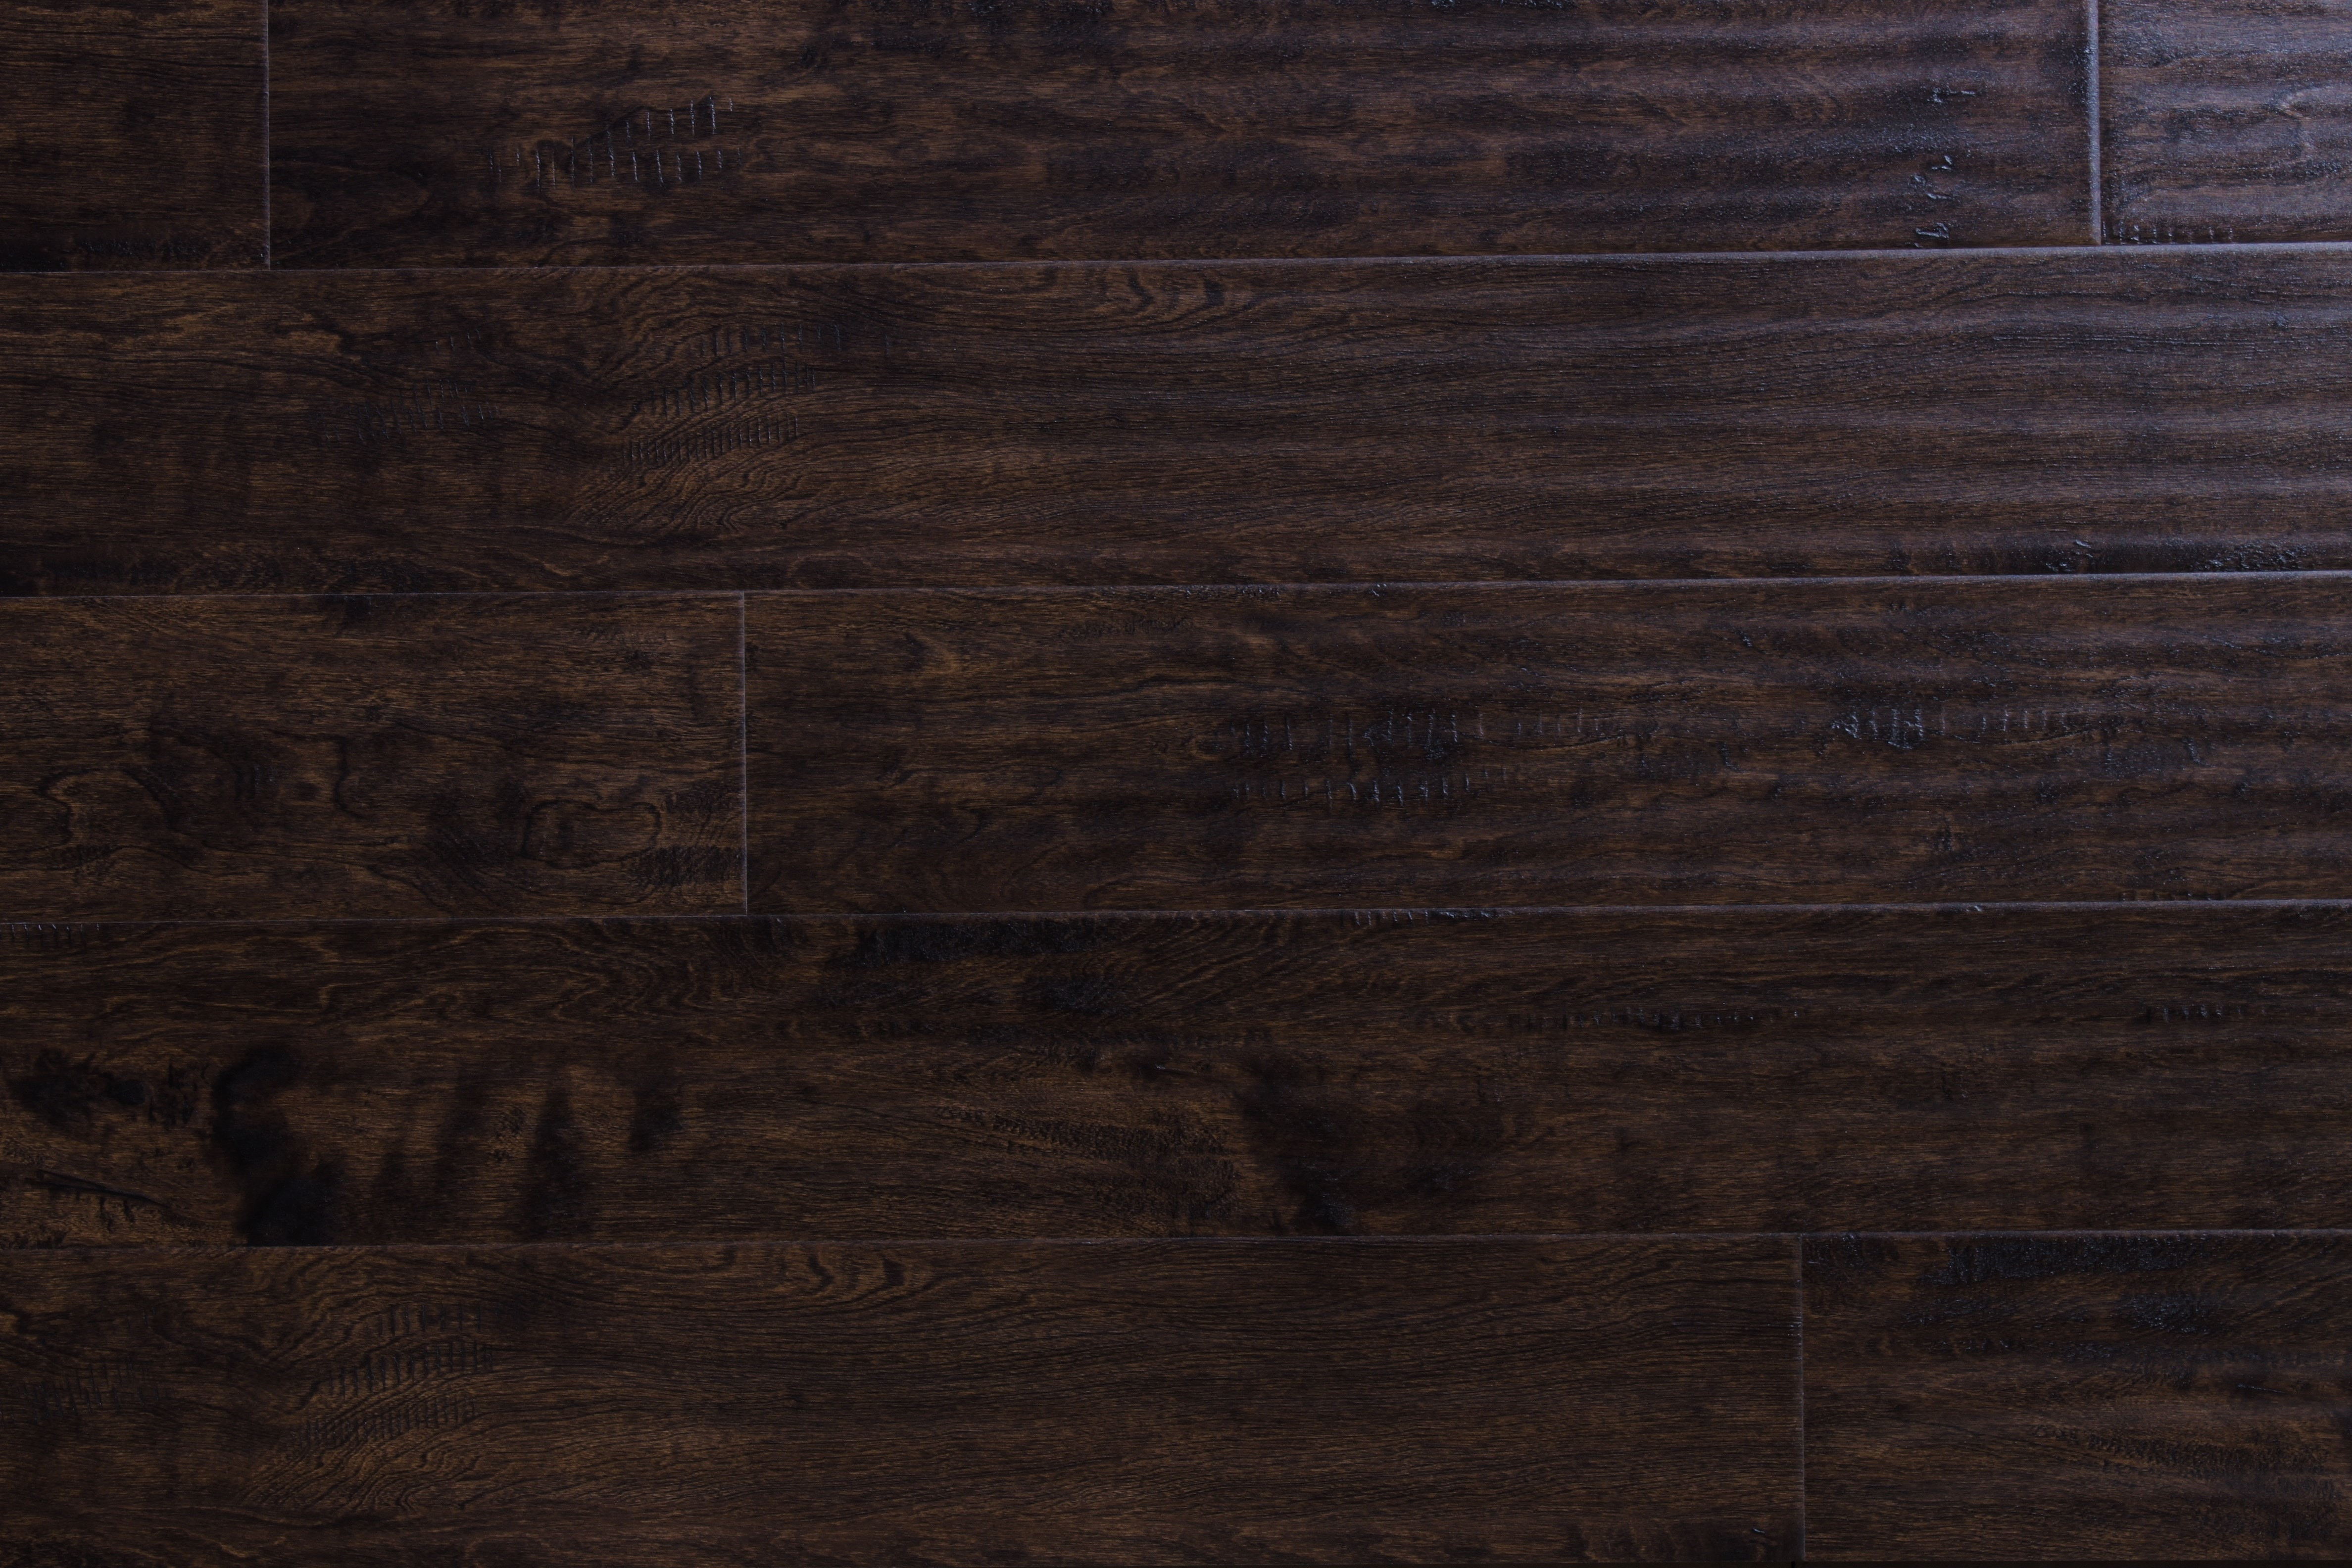 25 Lovable Hand Scraped solid Hardwood Flooring 2021 free download hand scraped solid hardwood flooring of wood flooring free samples available at builddirecta for tailor multi gb 5874277bb8d3c